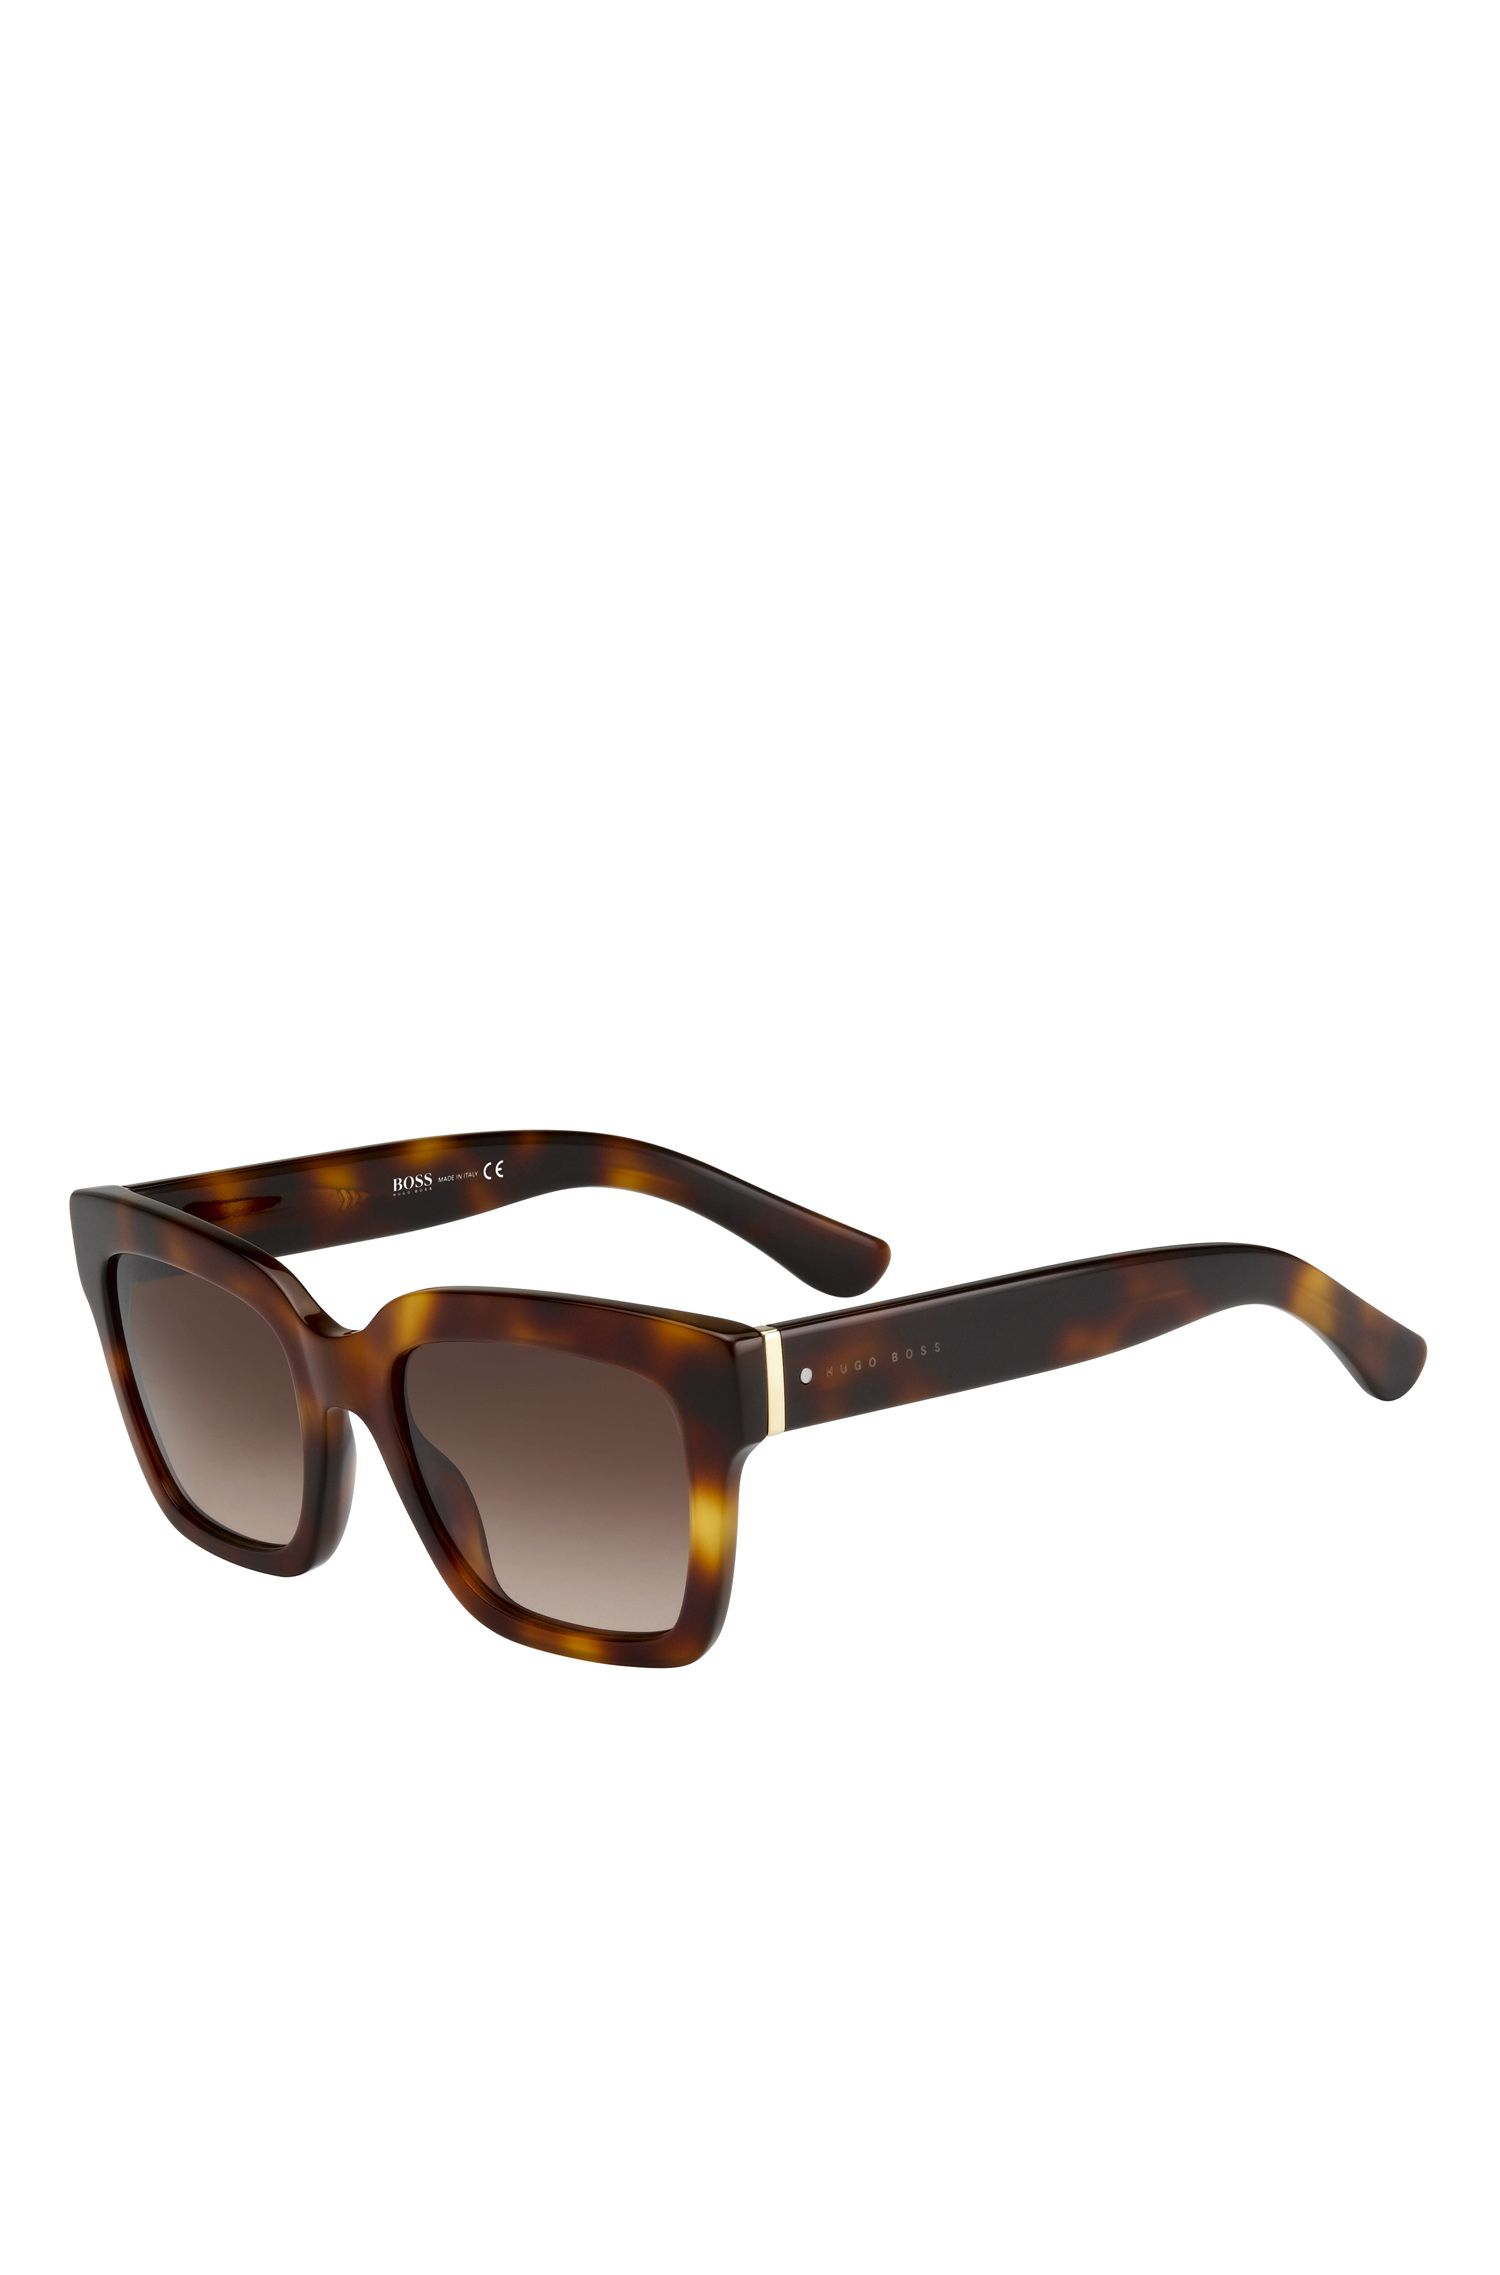 Brown Gradient Lens Rectangular Sunglasses | BOSS 0674S